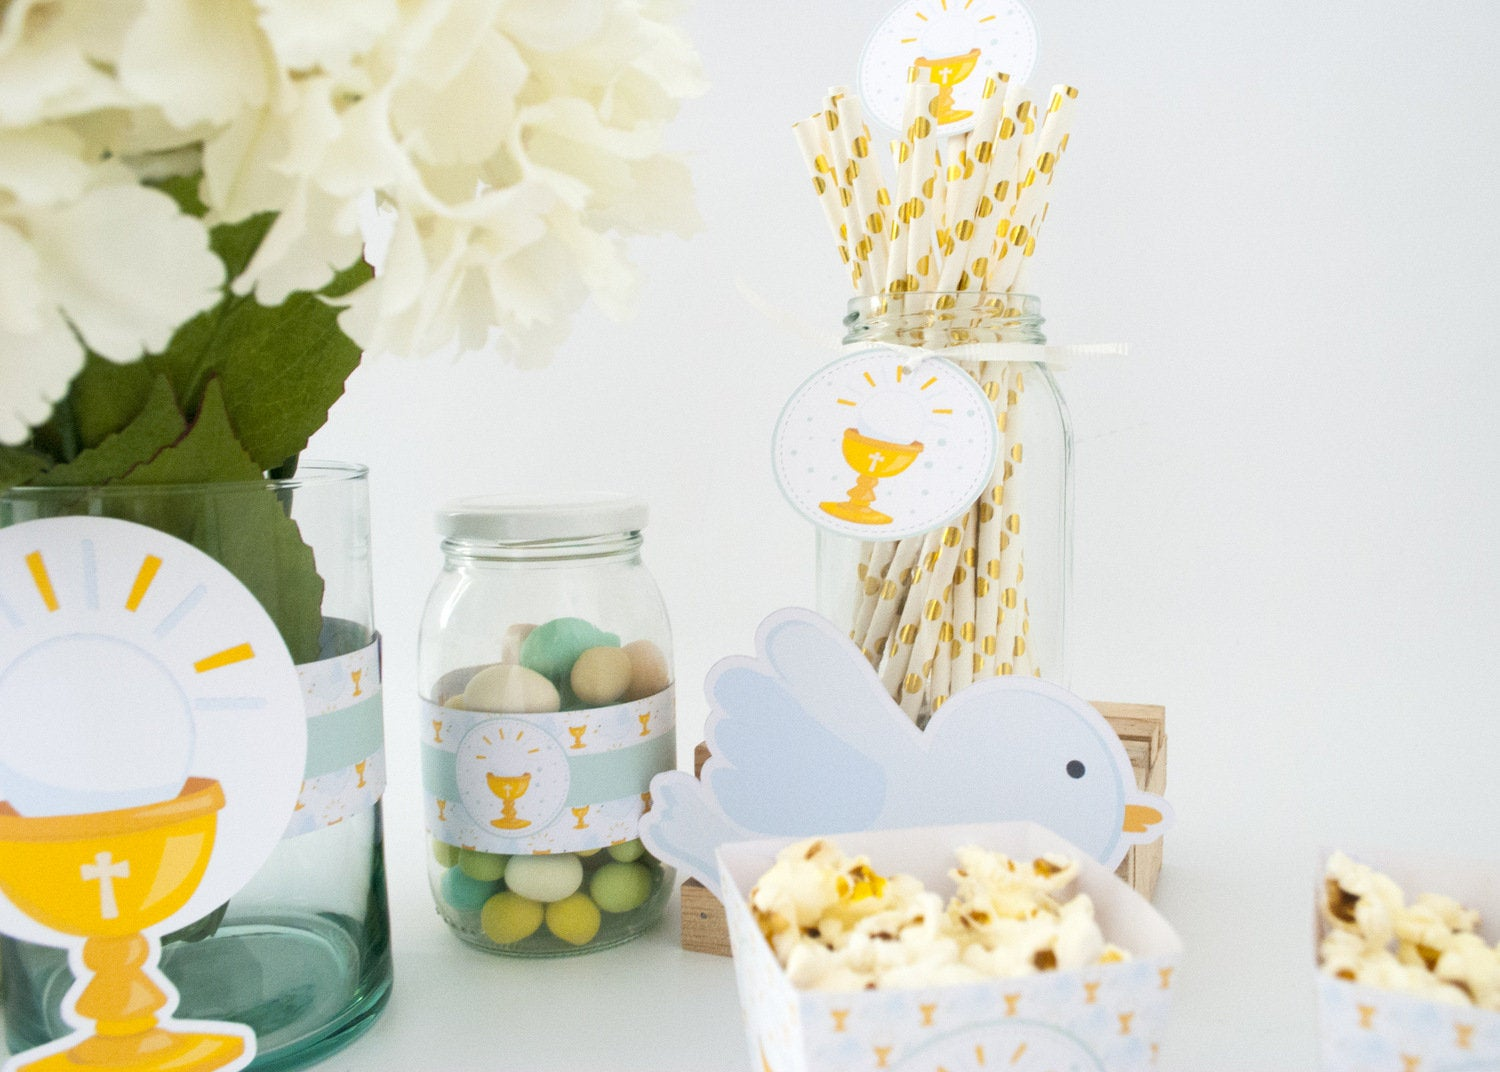 DIY PAPER FIRST COMMUNION DECOR - Are you planning your first communion as a girl or a boy? Here are 12+ first communion ideas to inspire you. Many DIY ideas so you can create an unforgettable event.